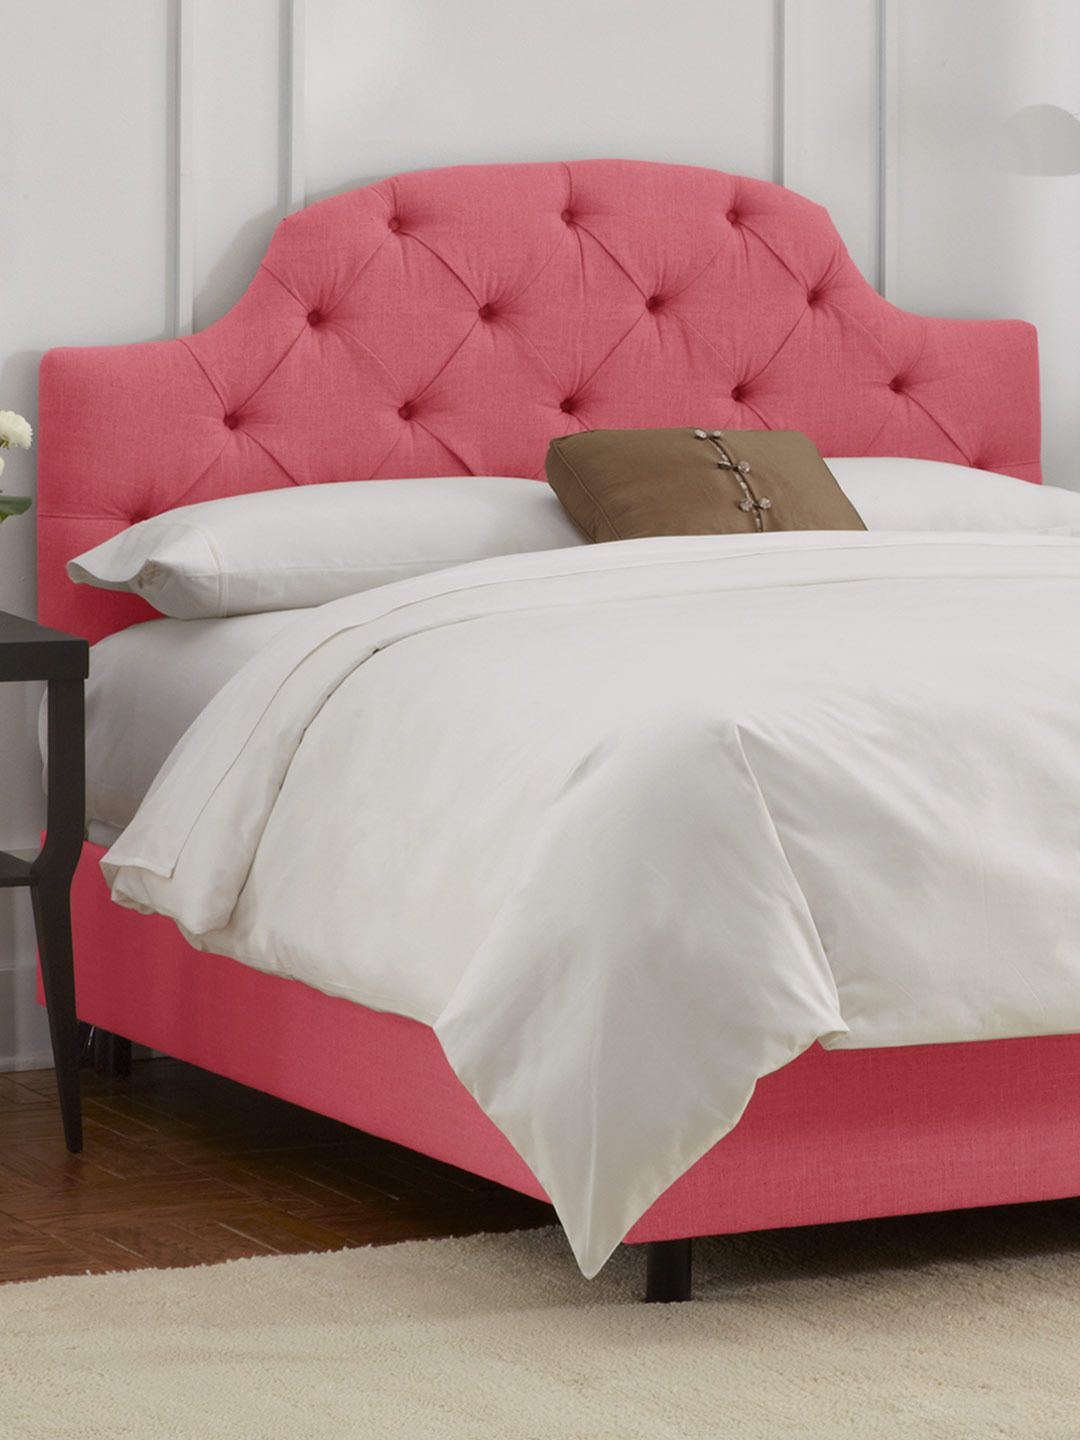 But Maybe Make Mattress Cover Out Of The Same Material I Use To Upholster Headboard Curved Tufted In Linen C Gilt Home